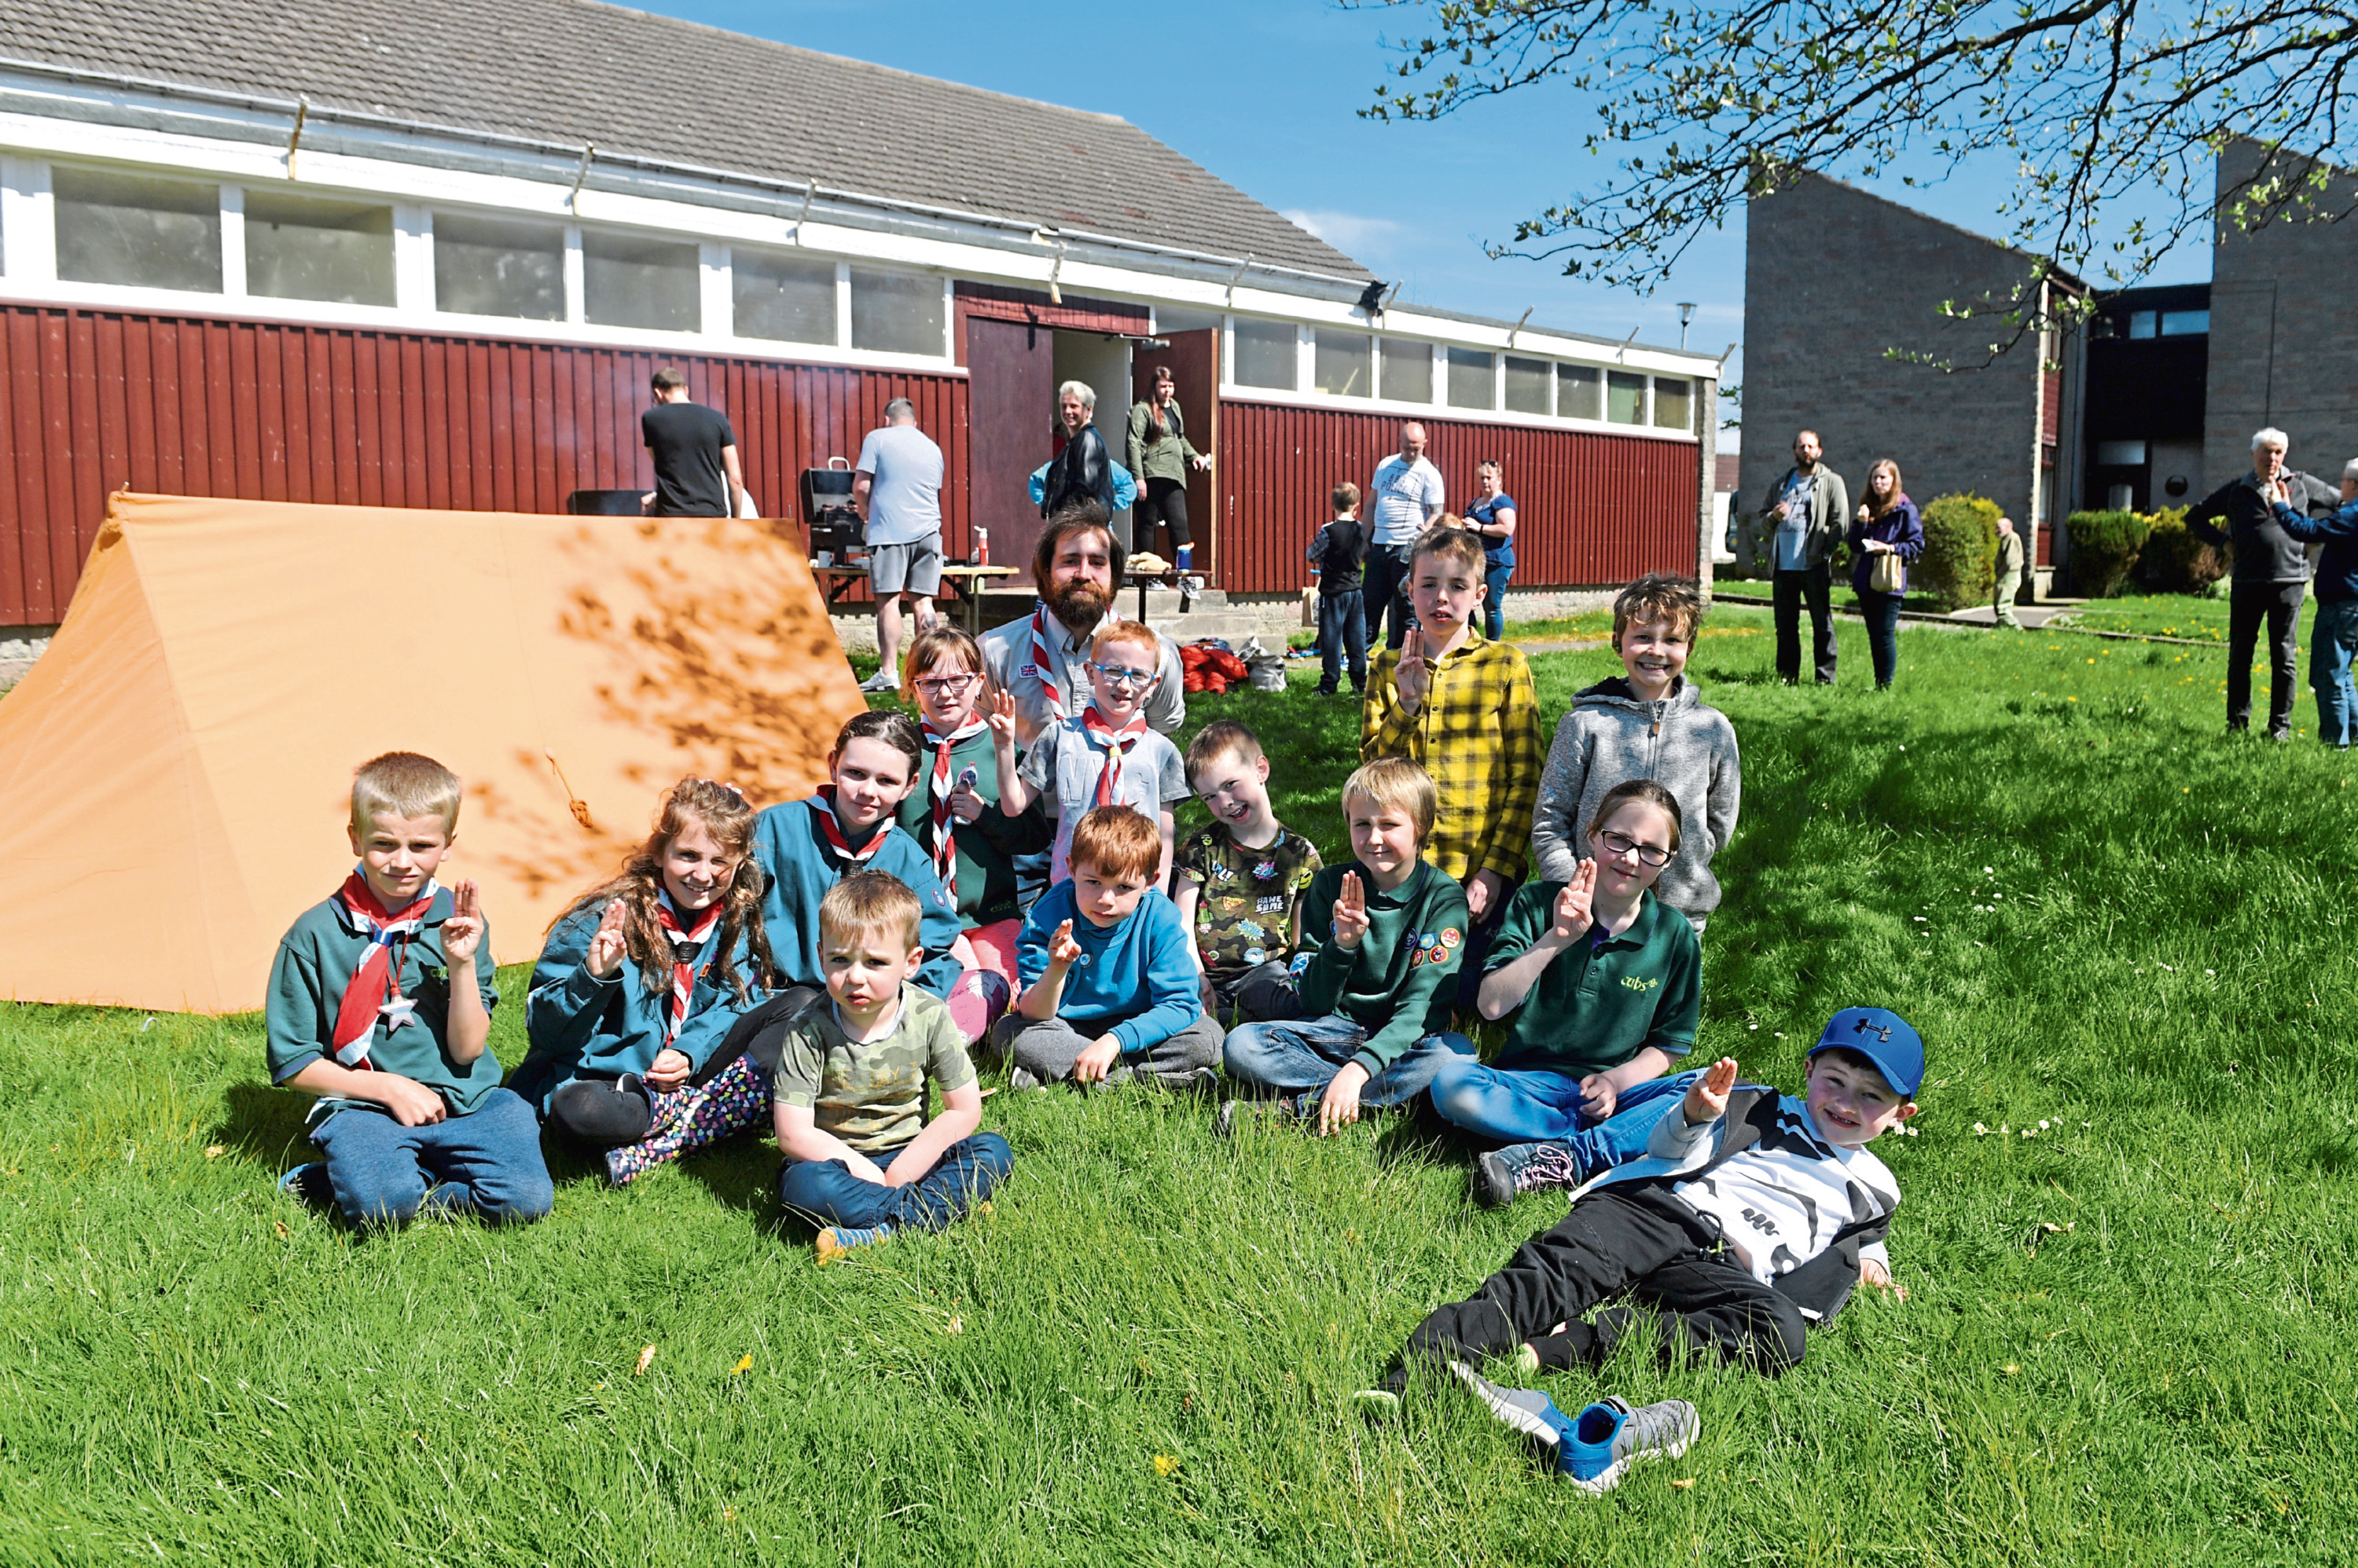 The 55th Kincorth Scouts are raising £55k to upgrade their scout hut.